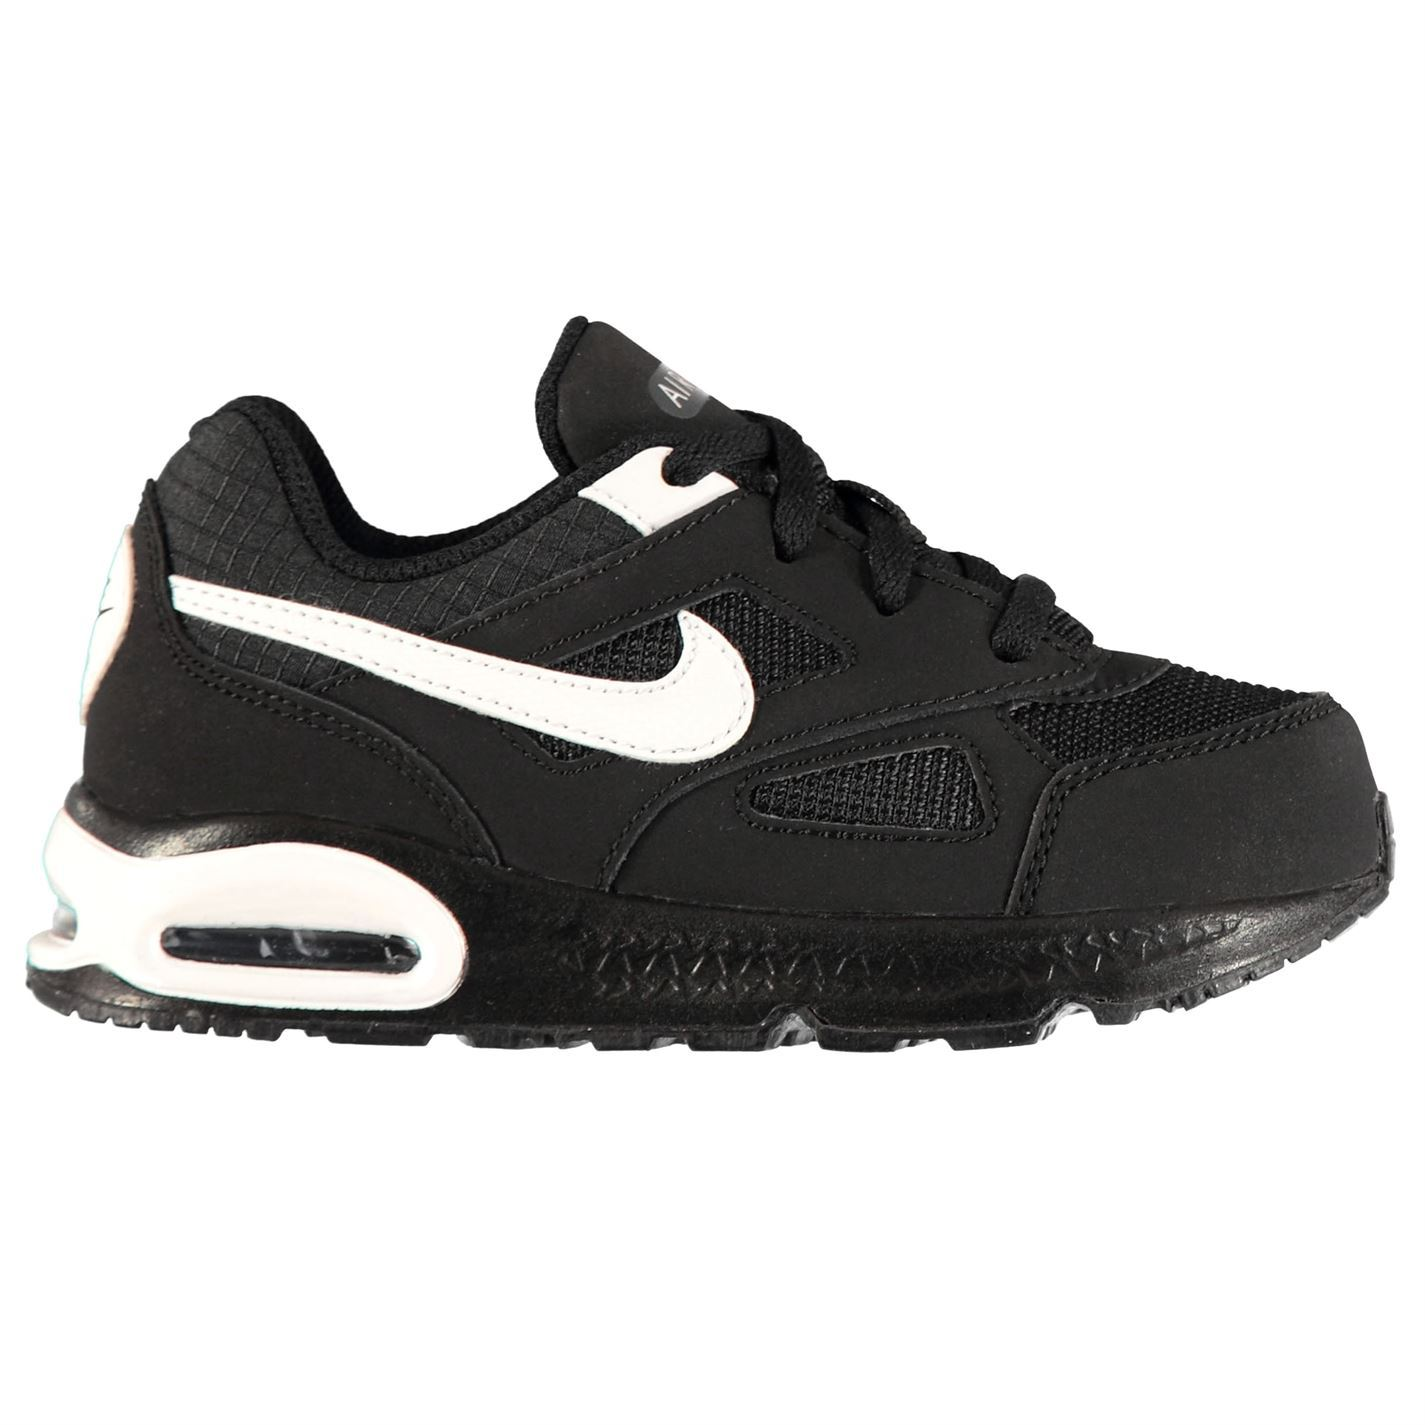 super popular 2ab9f f7889 Nike-Air-Max-Ivo-Infant-Boys-Trainers-Shoes-